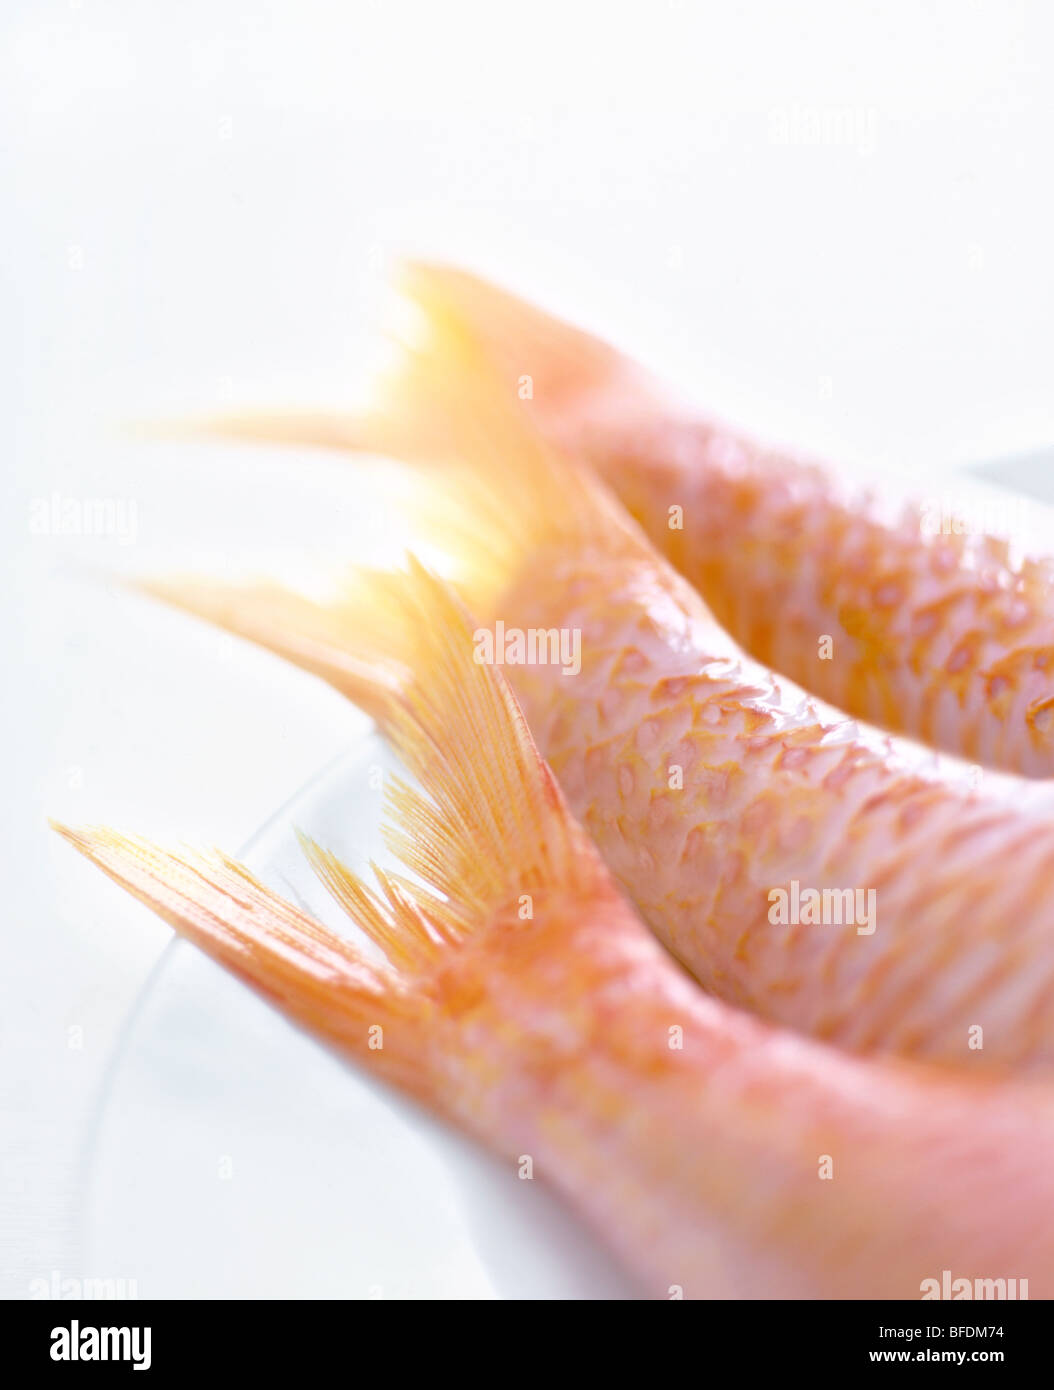 Fish tails stock photo royalty free image 26731464 alamy for Fish and tails